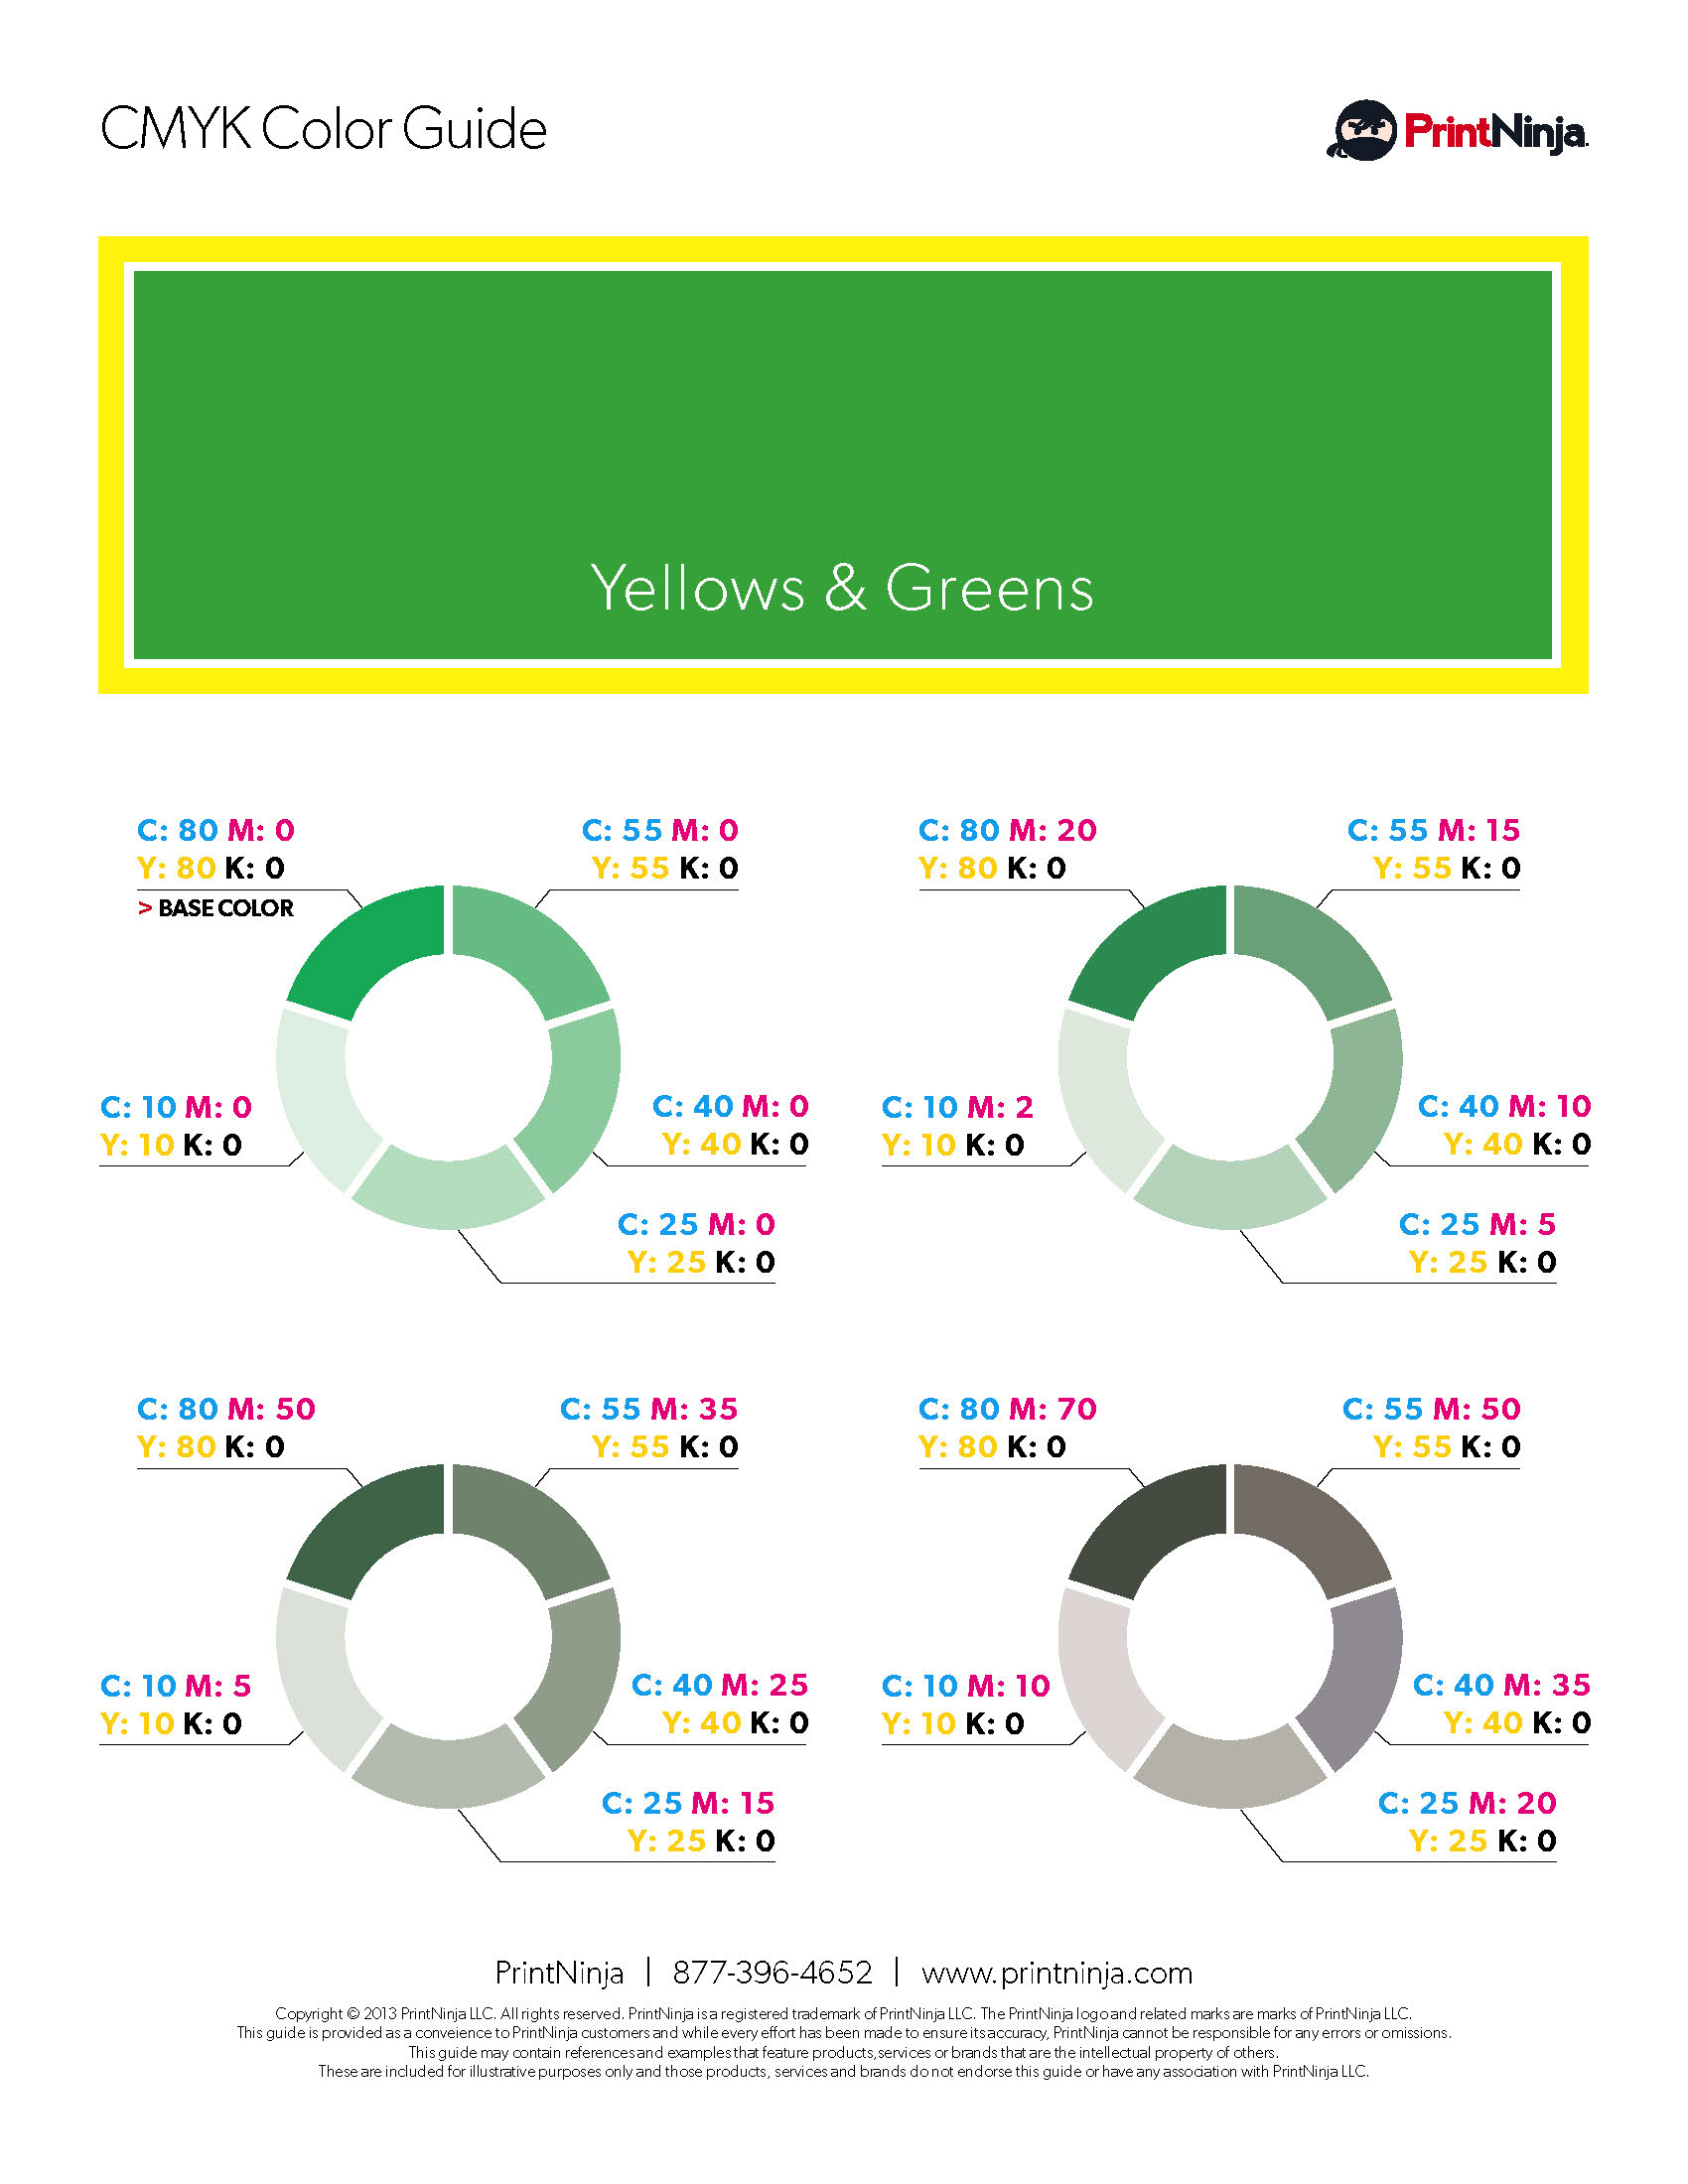 CMYK Suggested Values and Formula Charts